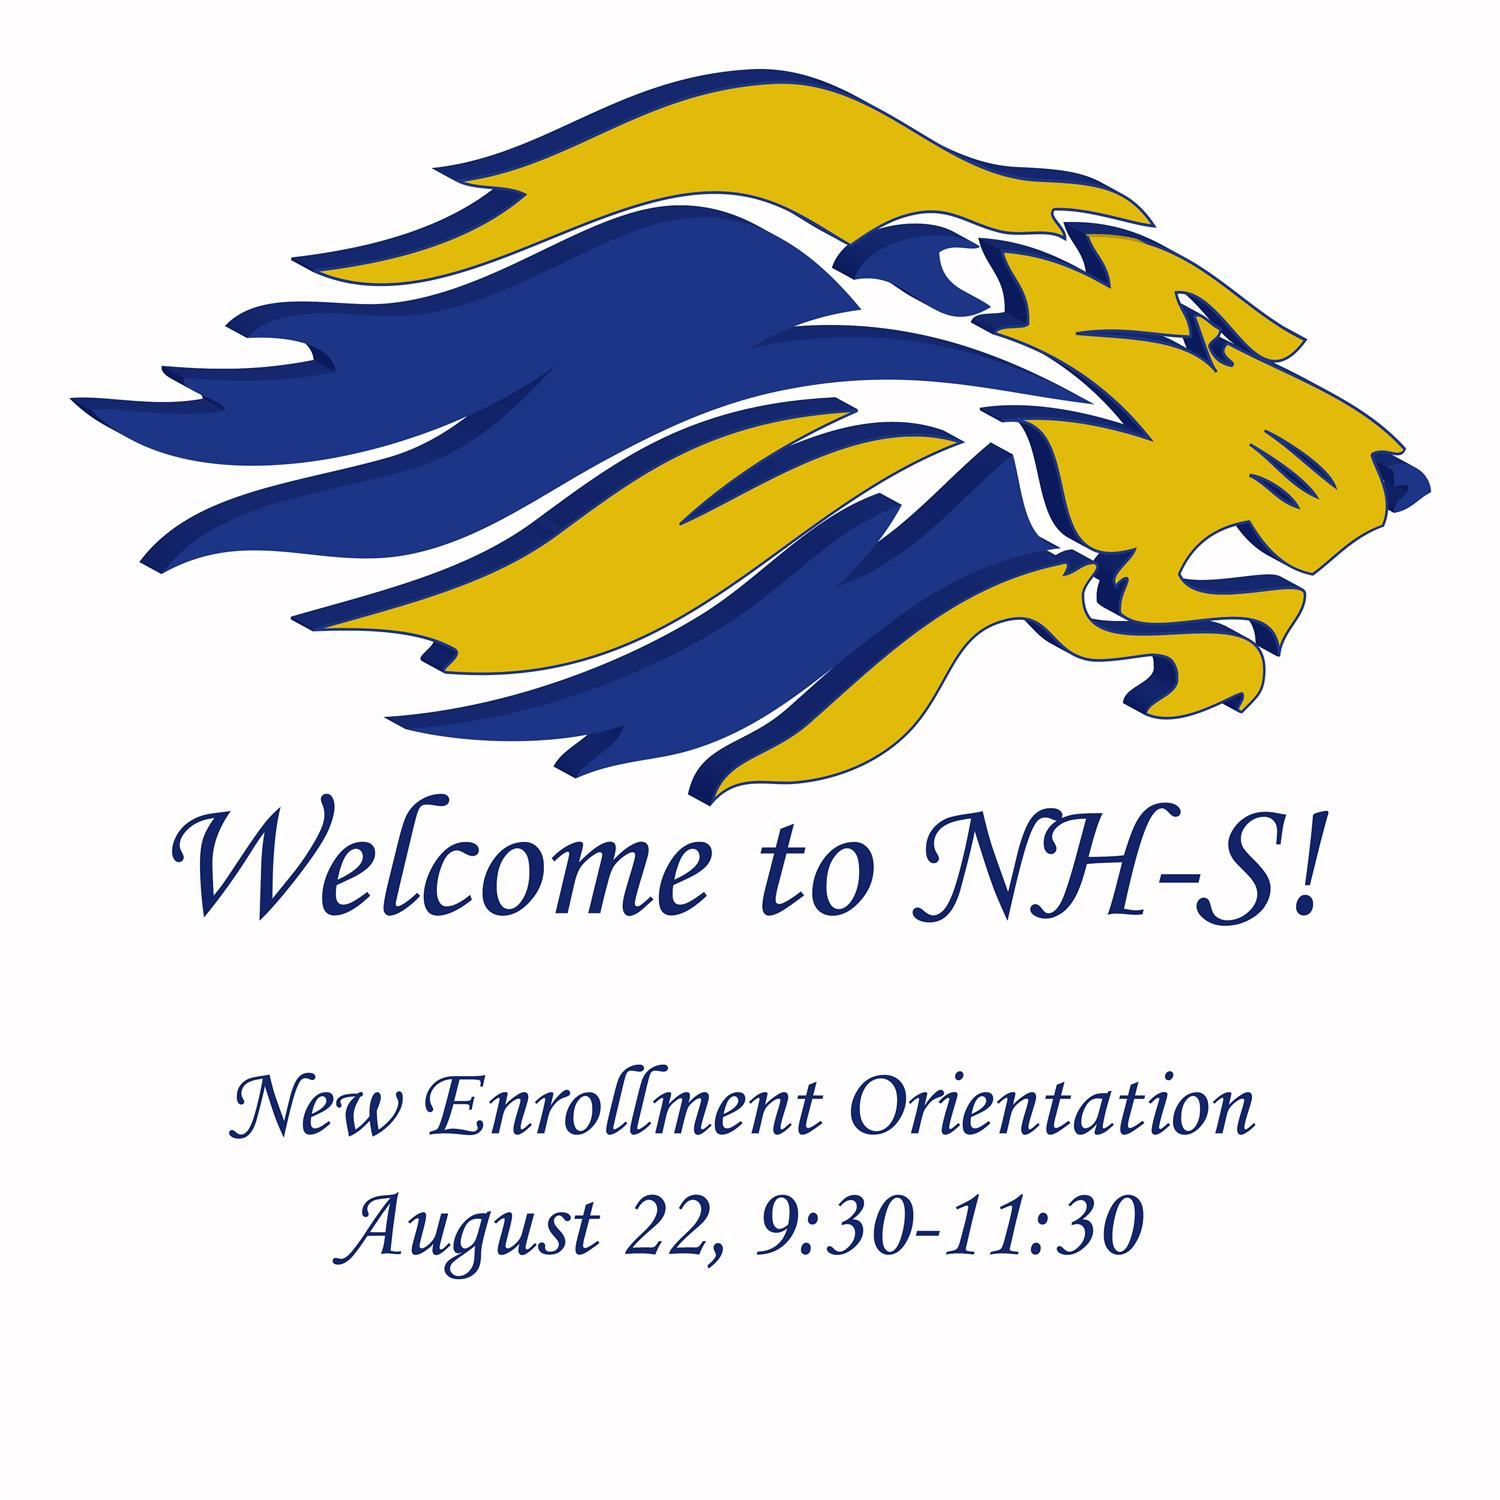 2019-20 New Enrollment Orientation